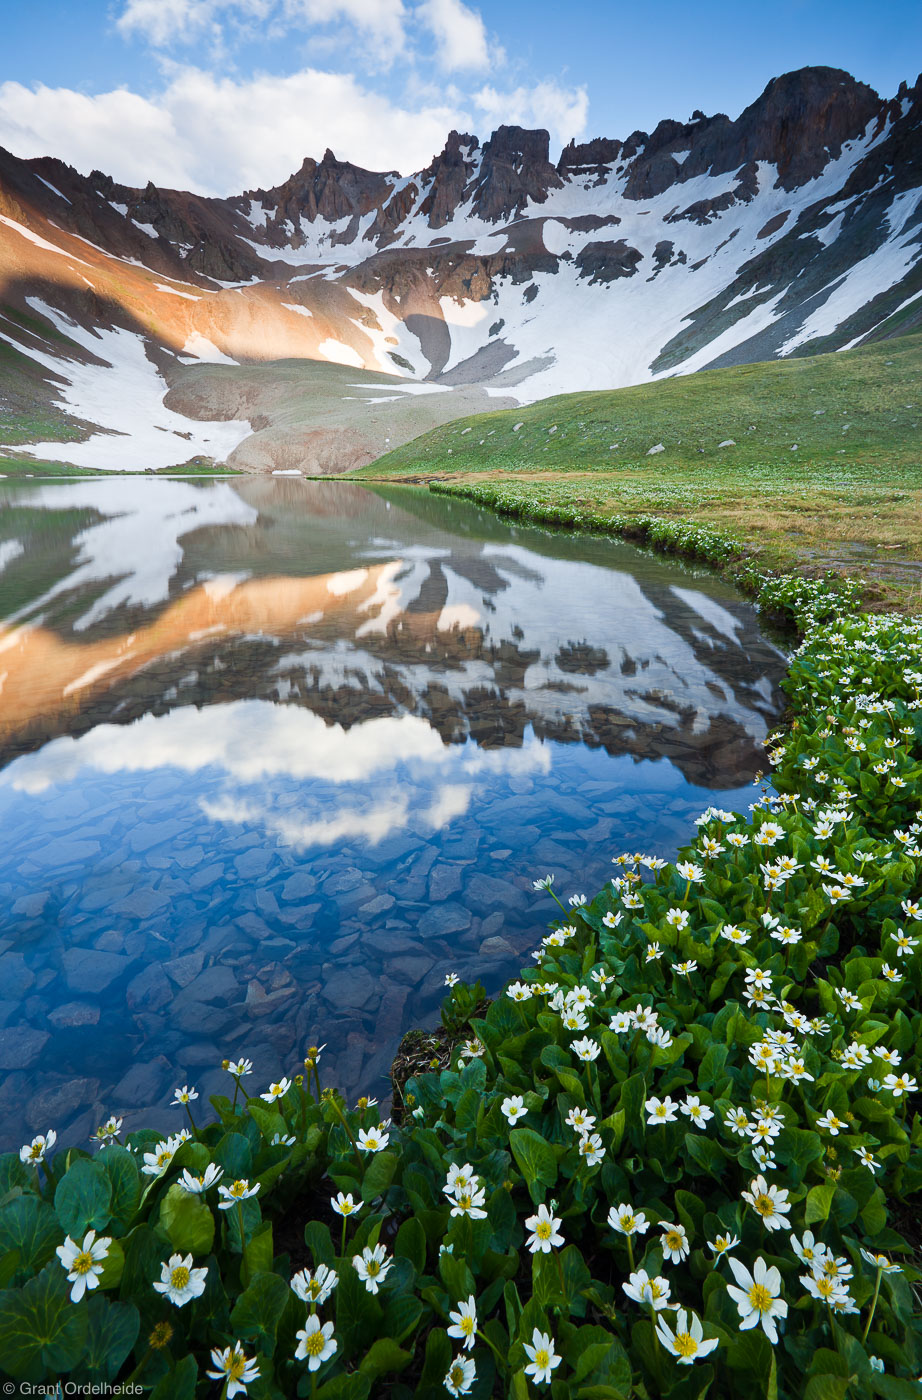 upper, blue, lakes, mt. sneffels, wilderness, colorado, ouray, marsh, marigolds, blooming, basin, photo